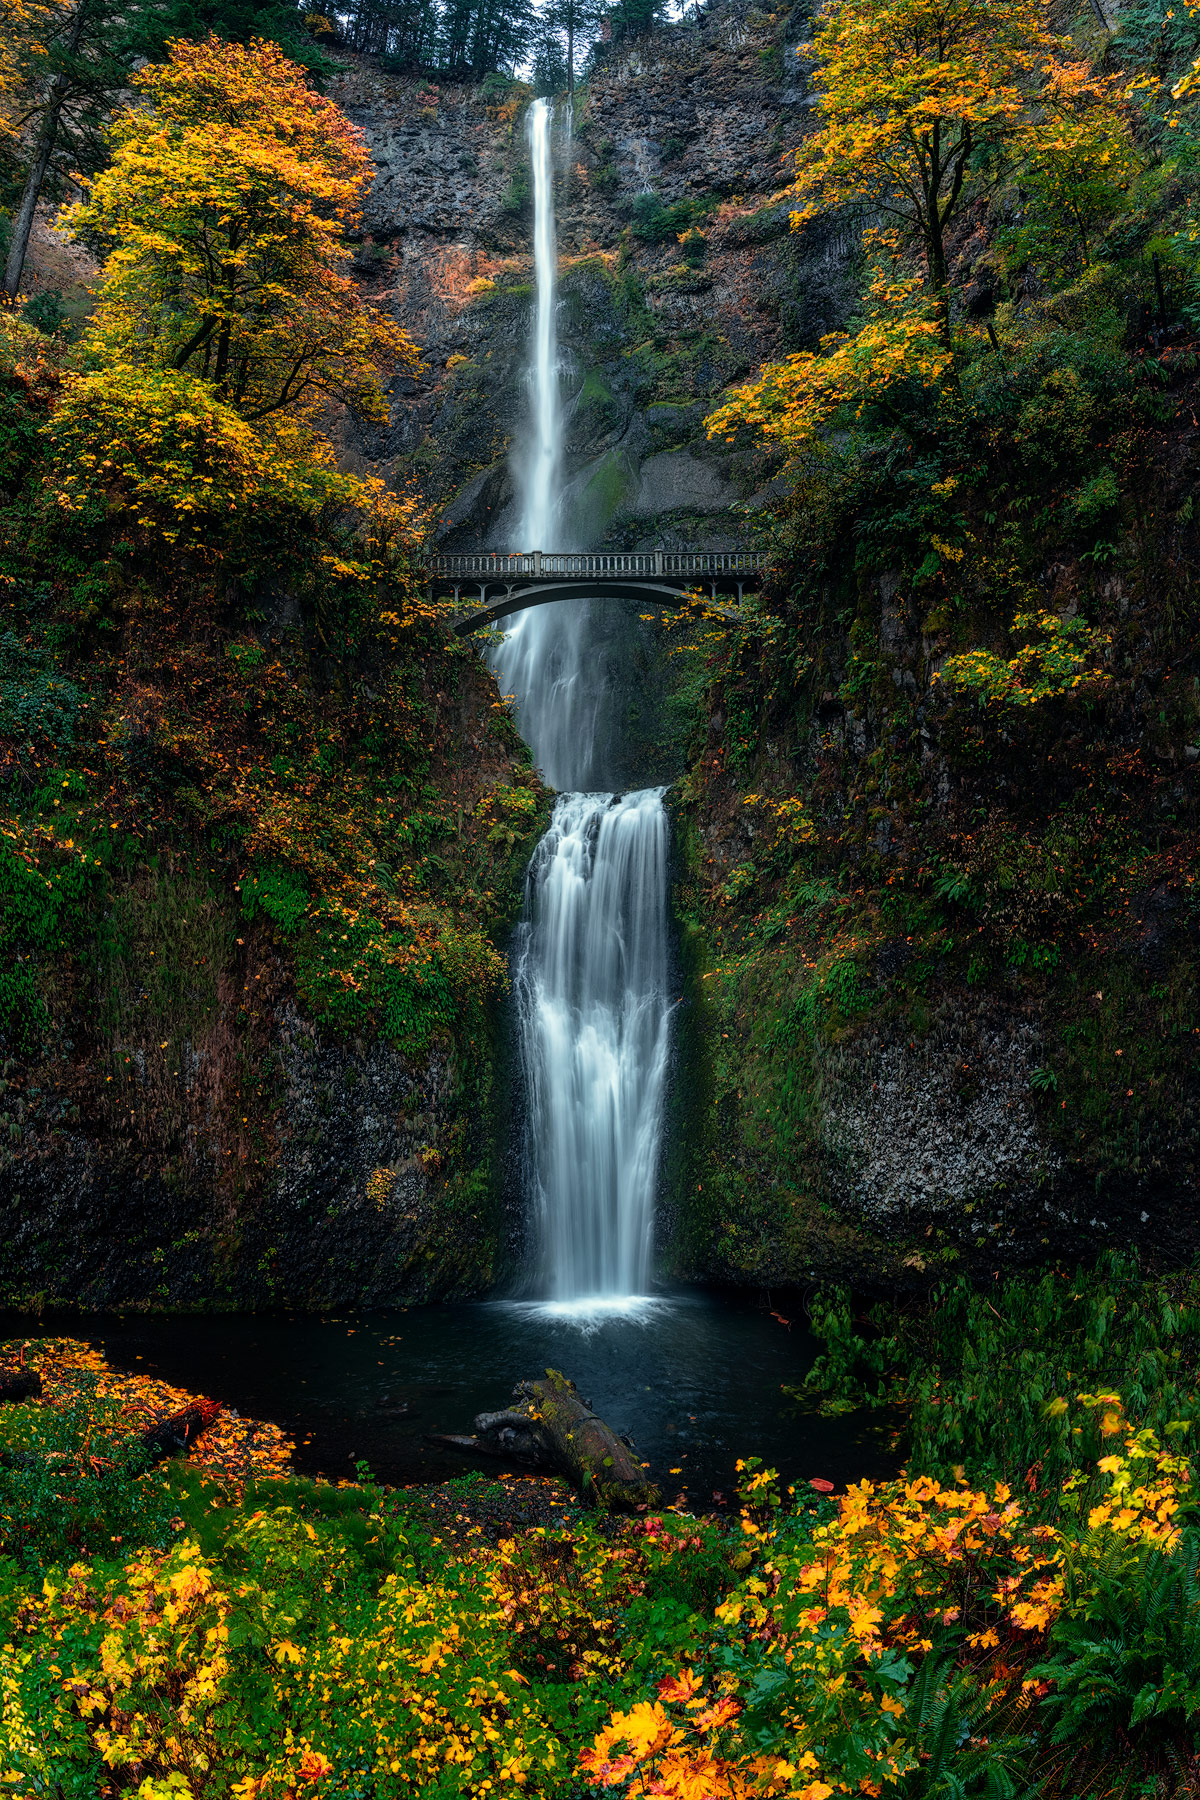 Multnomah Falls, Columbia River gorge, waterfall, photo